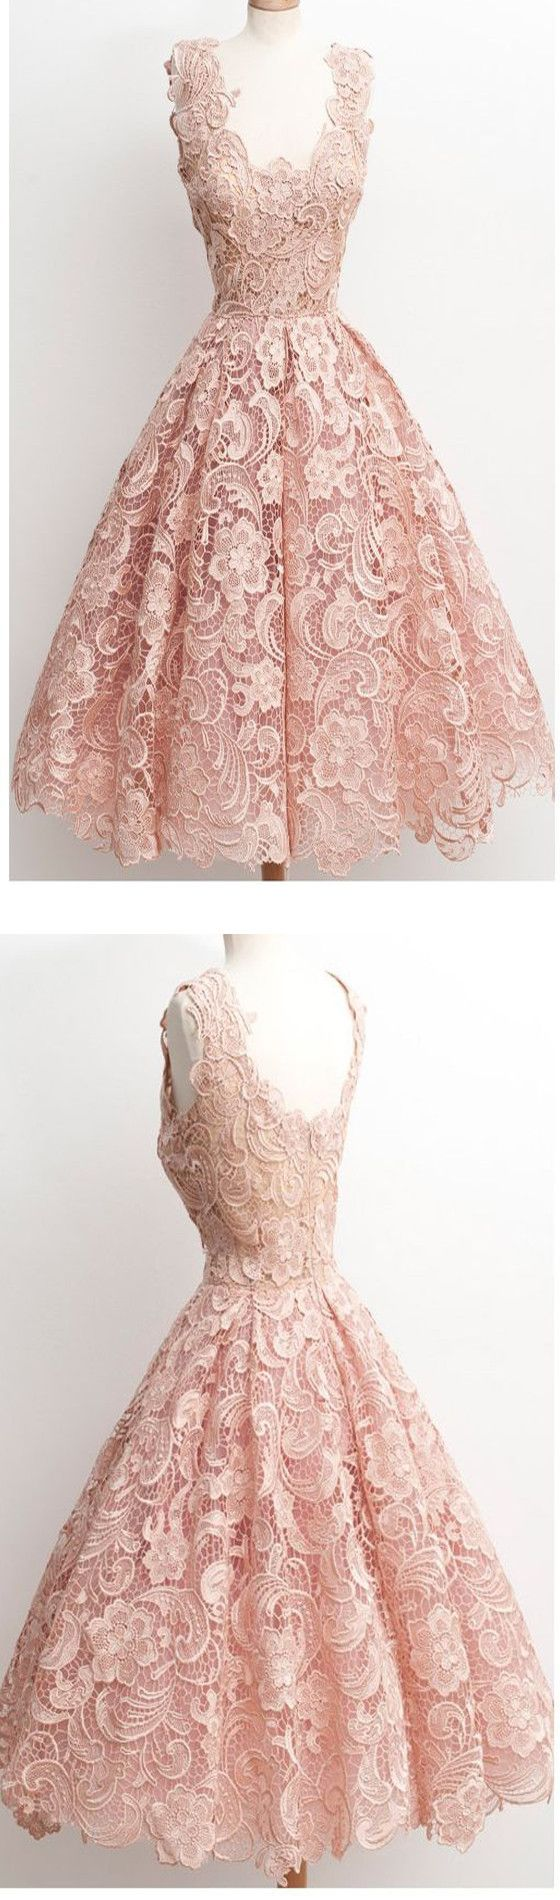 Dark Pink Lace Floral prints Vintage tea length elegant casual homecoming prom d…